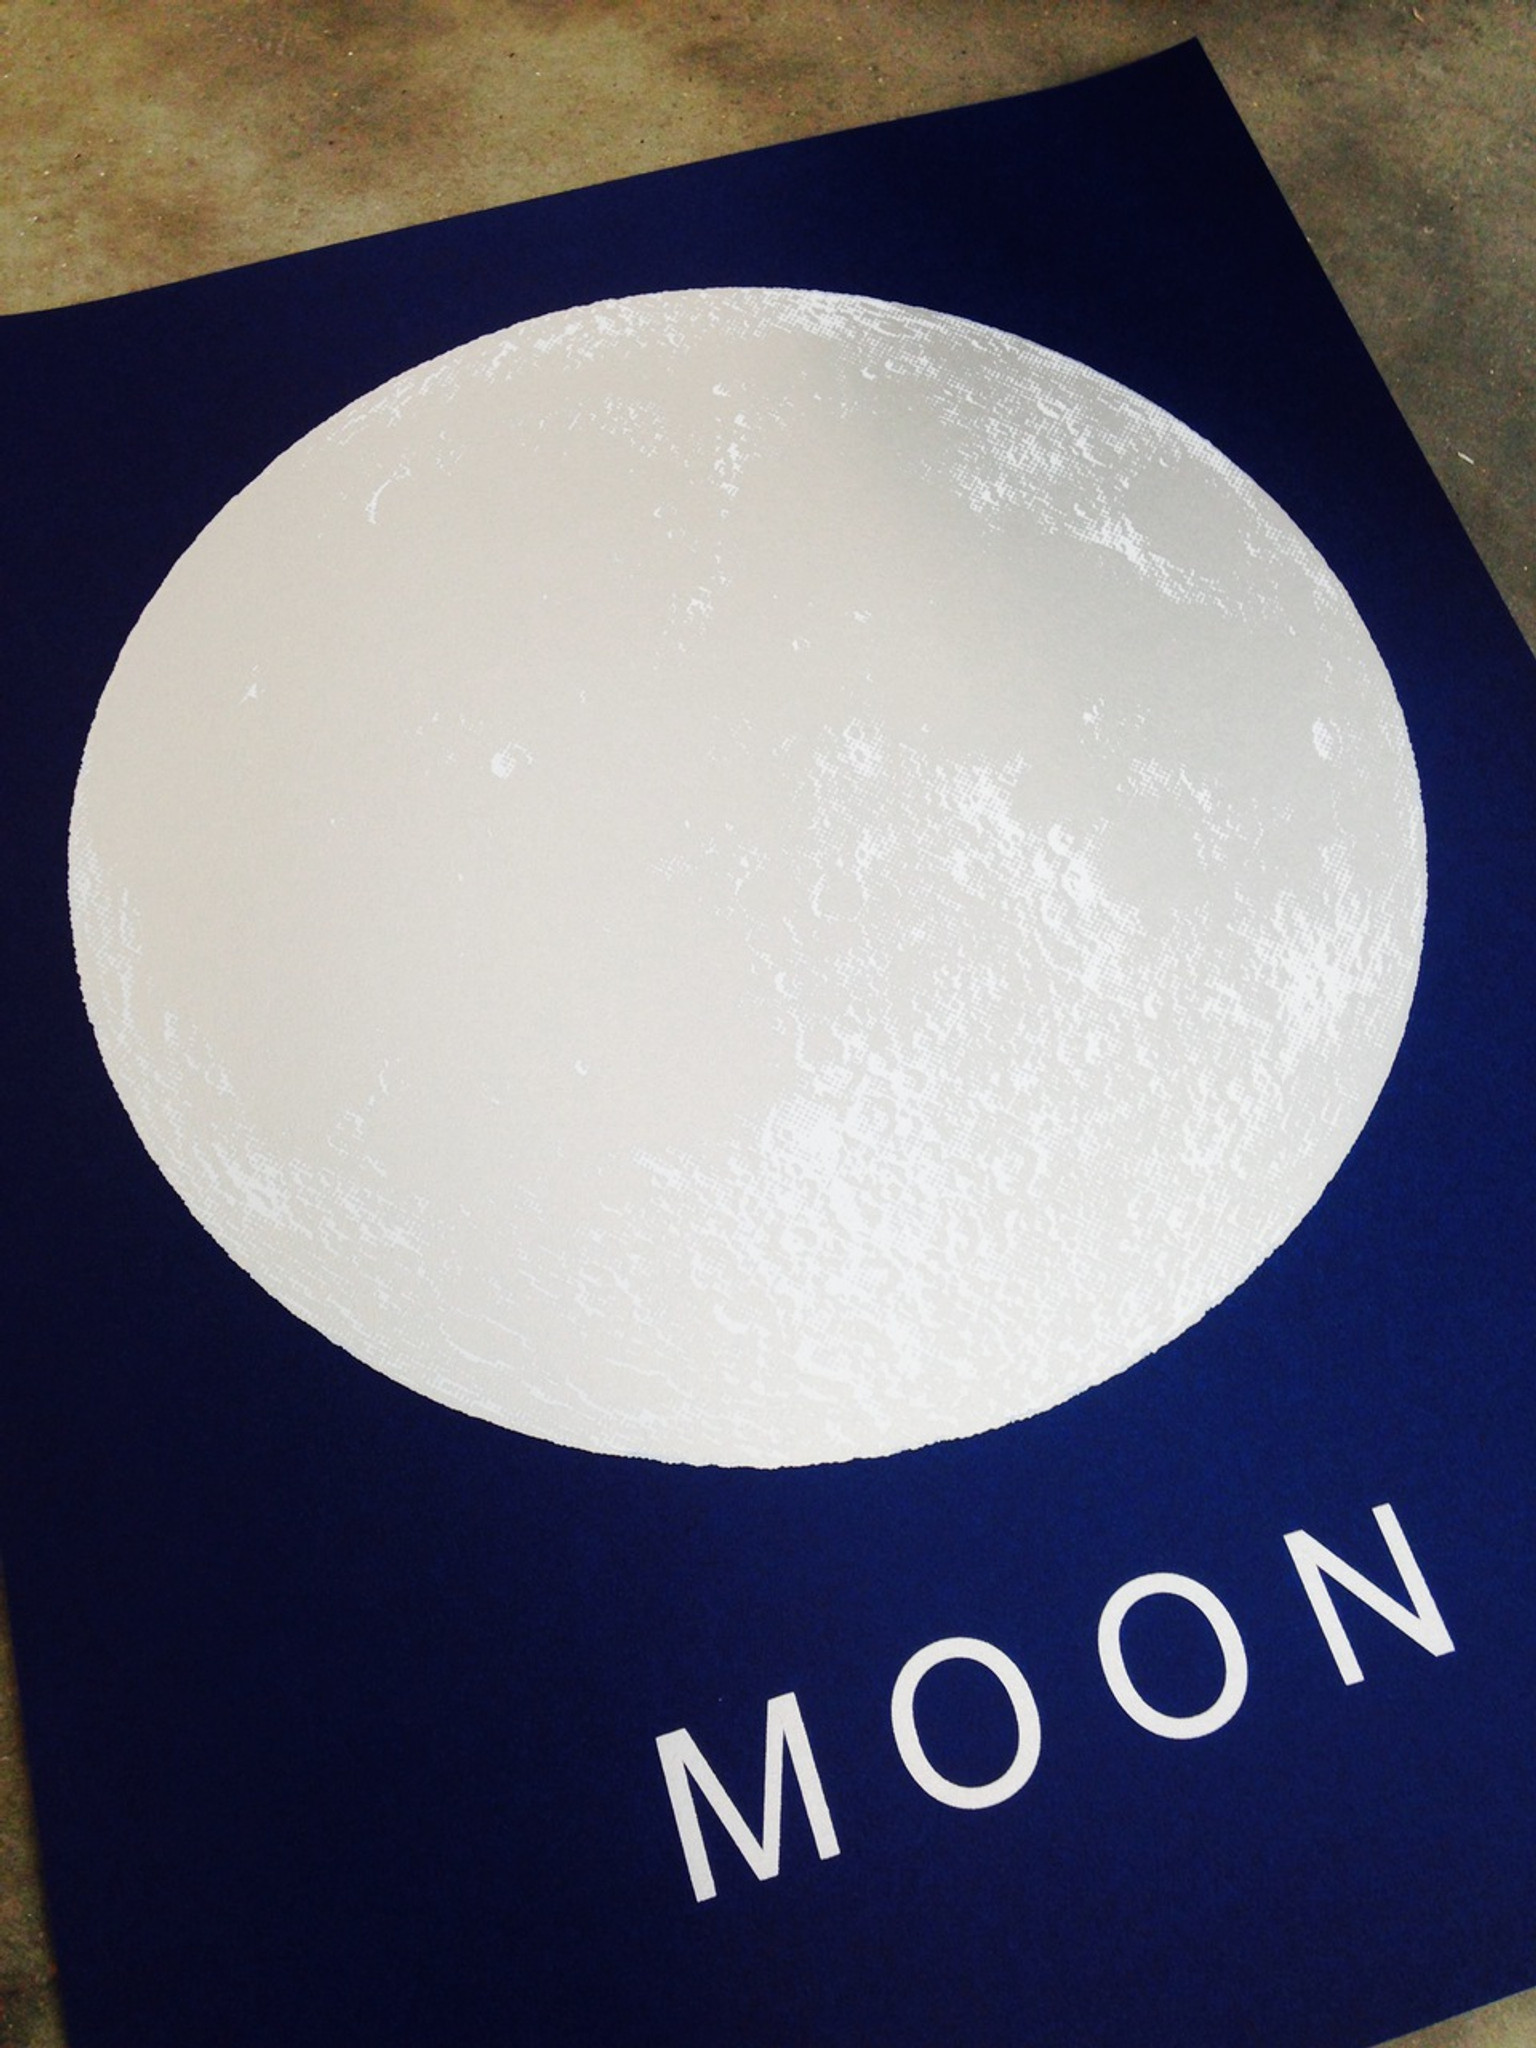 Full Moon by Philip Sheffield (SILVER)